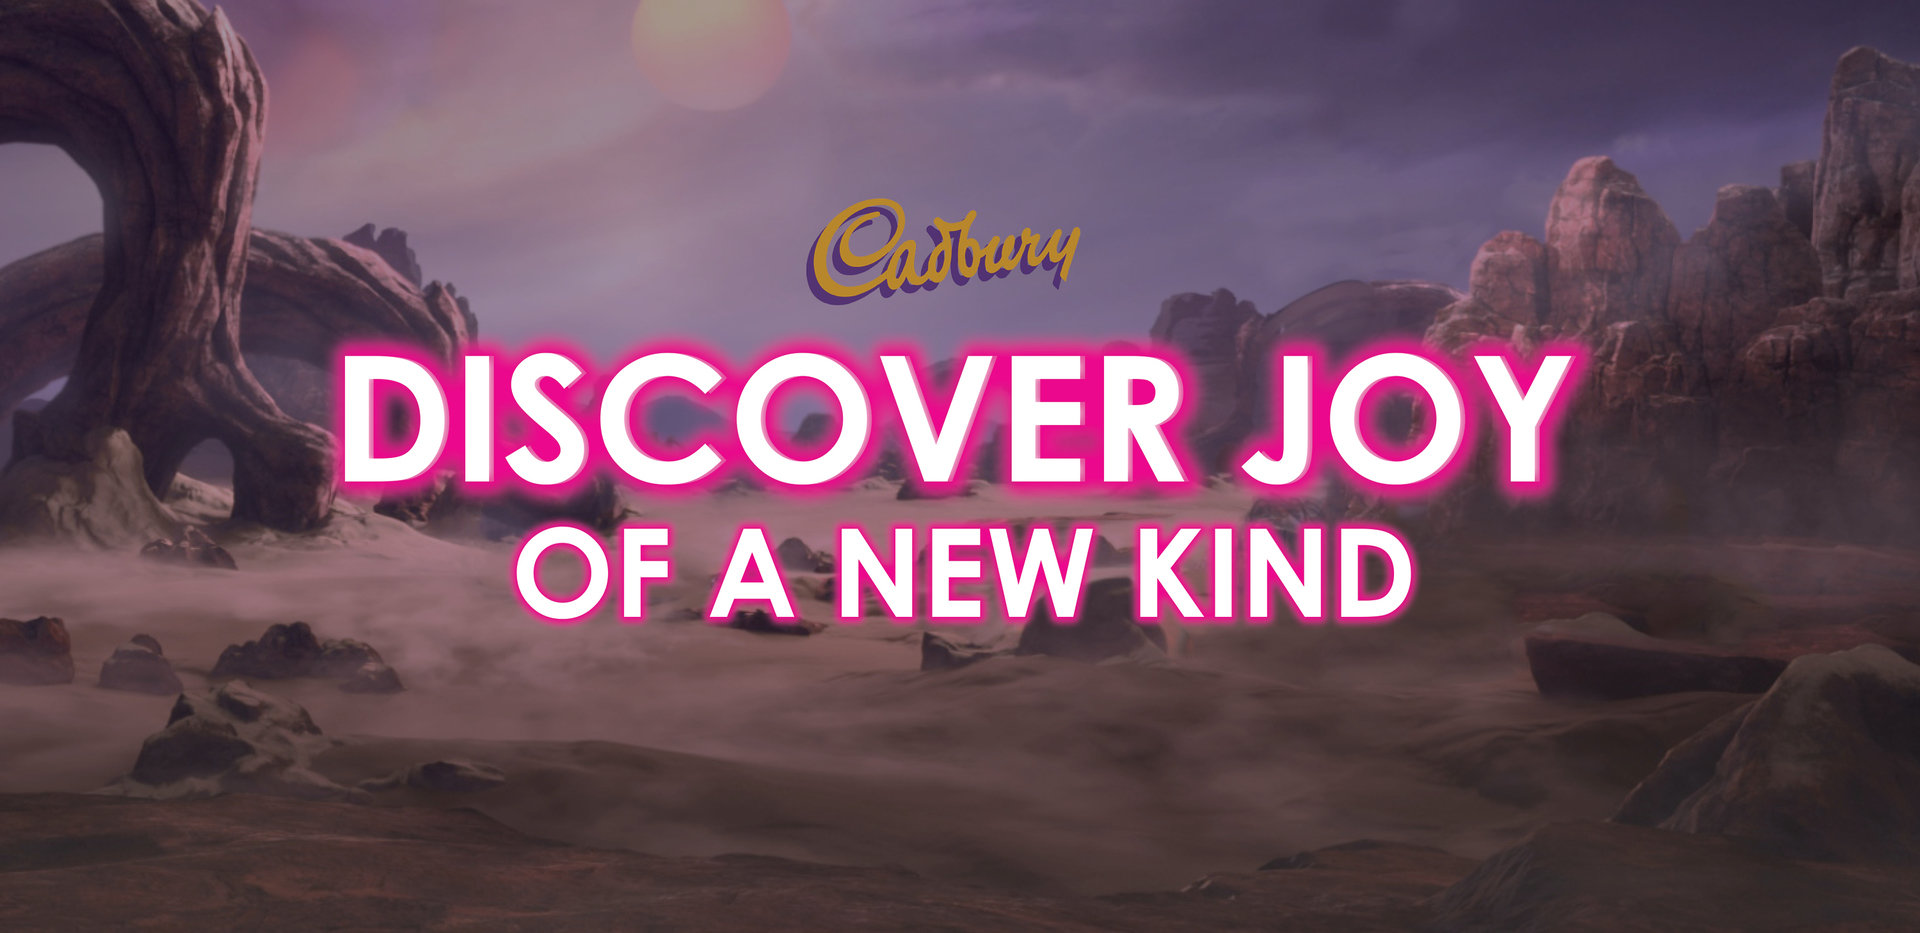 The Cadbury Martians are back to Discover Joy Of A New Kind